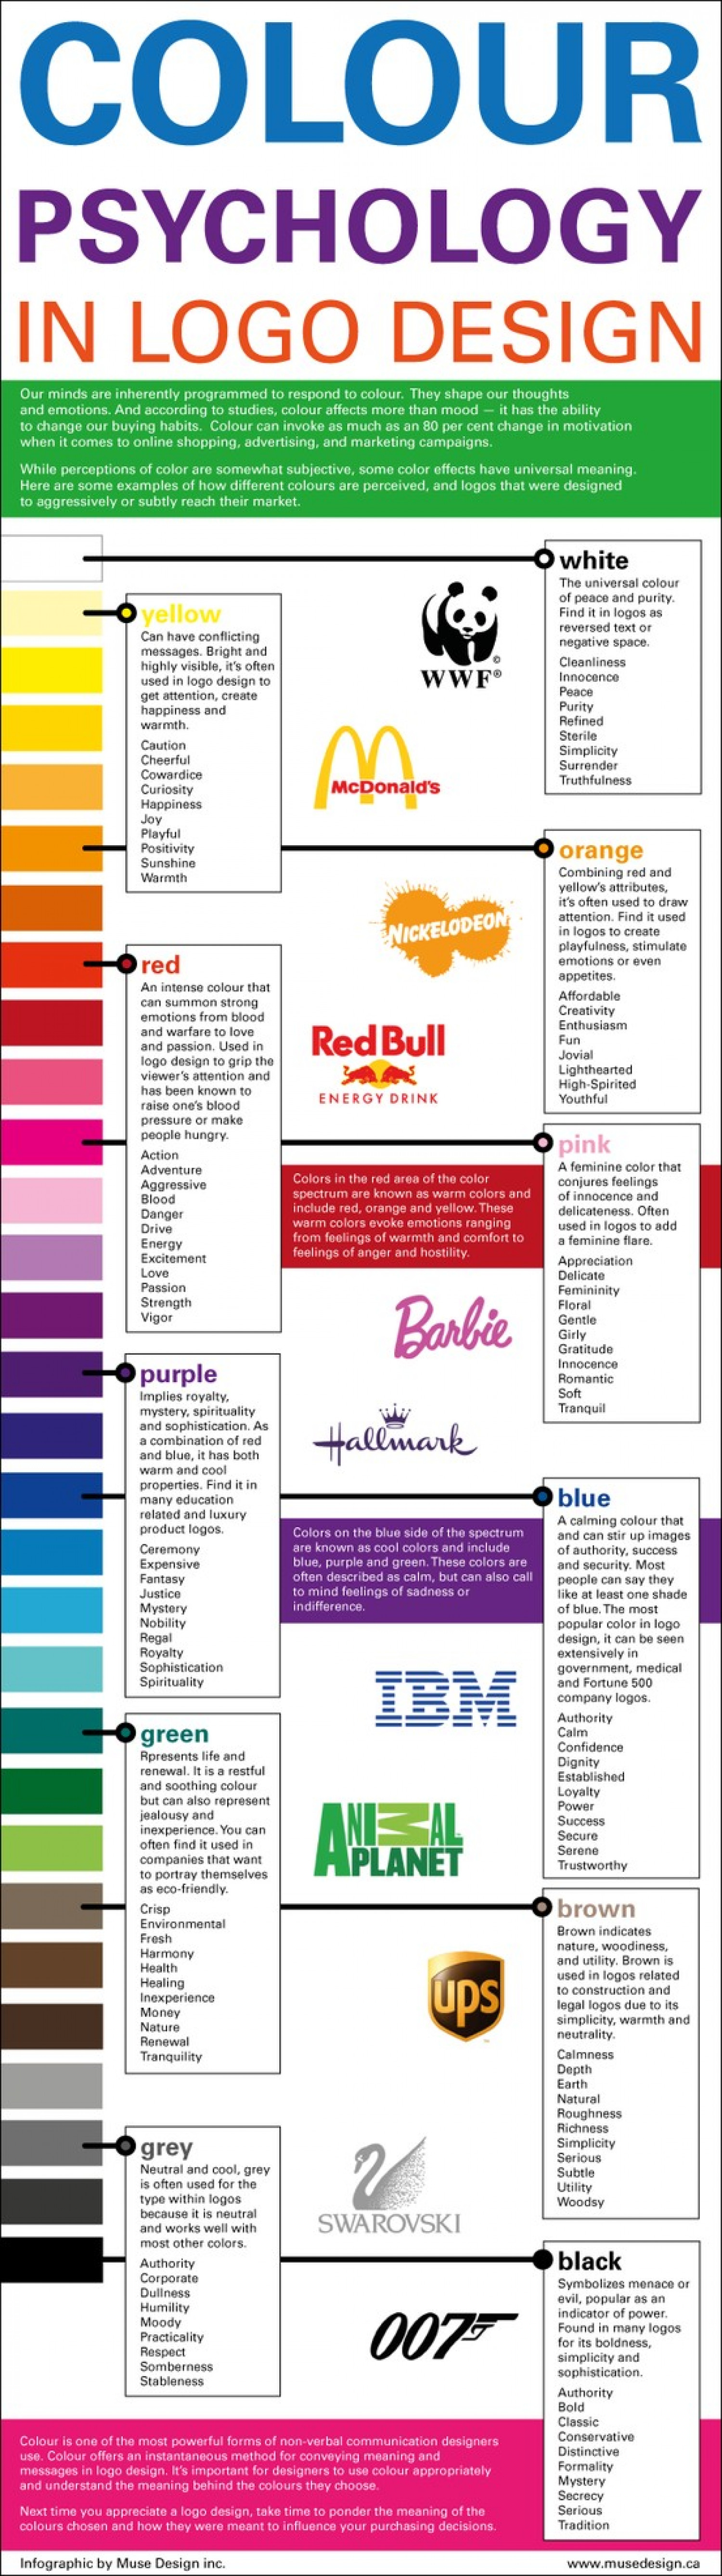 Color Psychology in Logo Design | Visual.ly